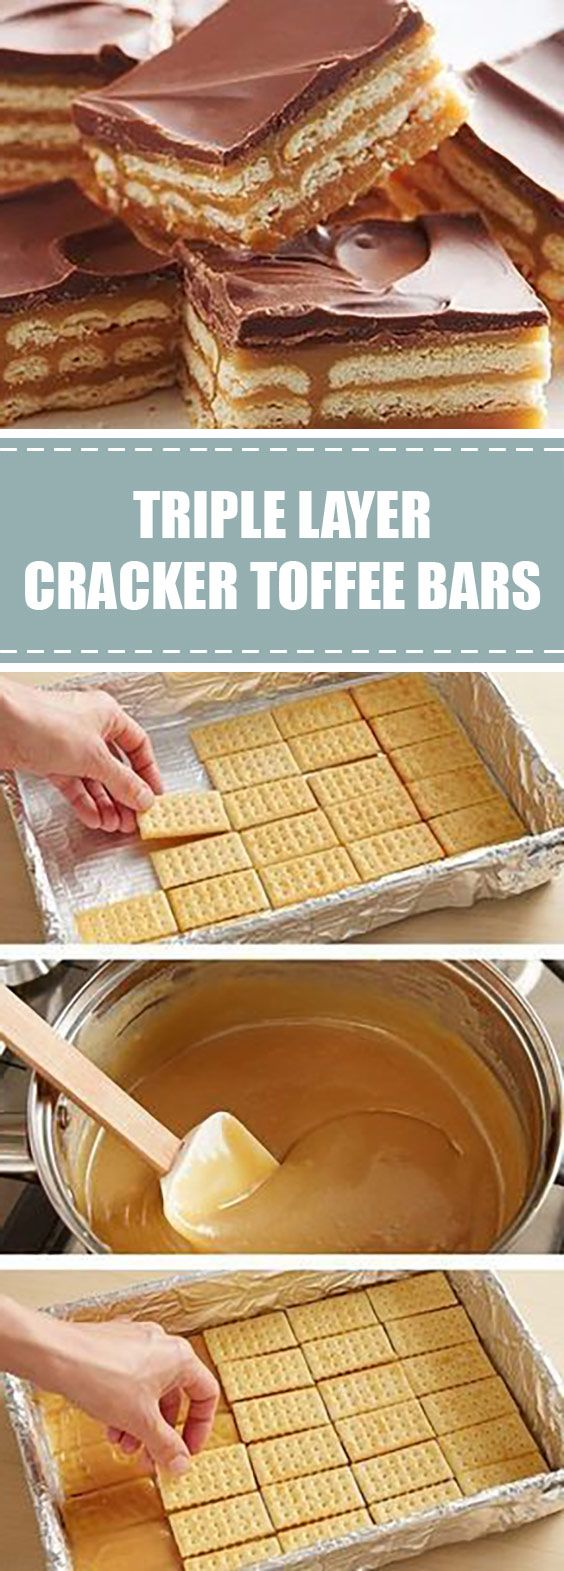 Photo of food.kitchn: Triple Layer Cracker Toffee Bars